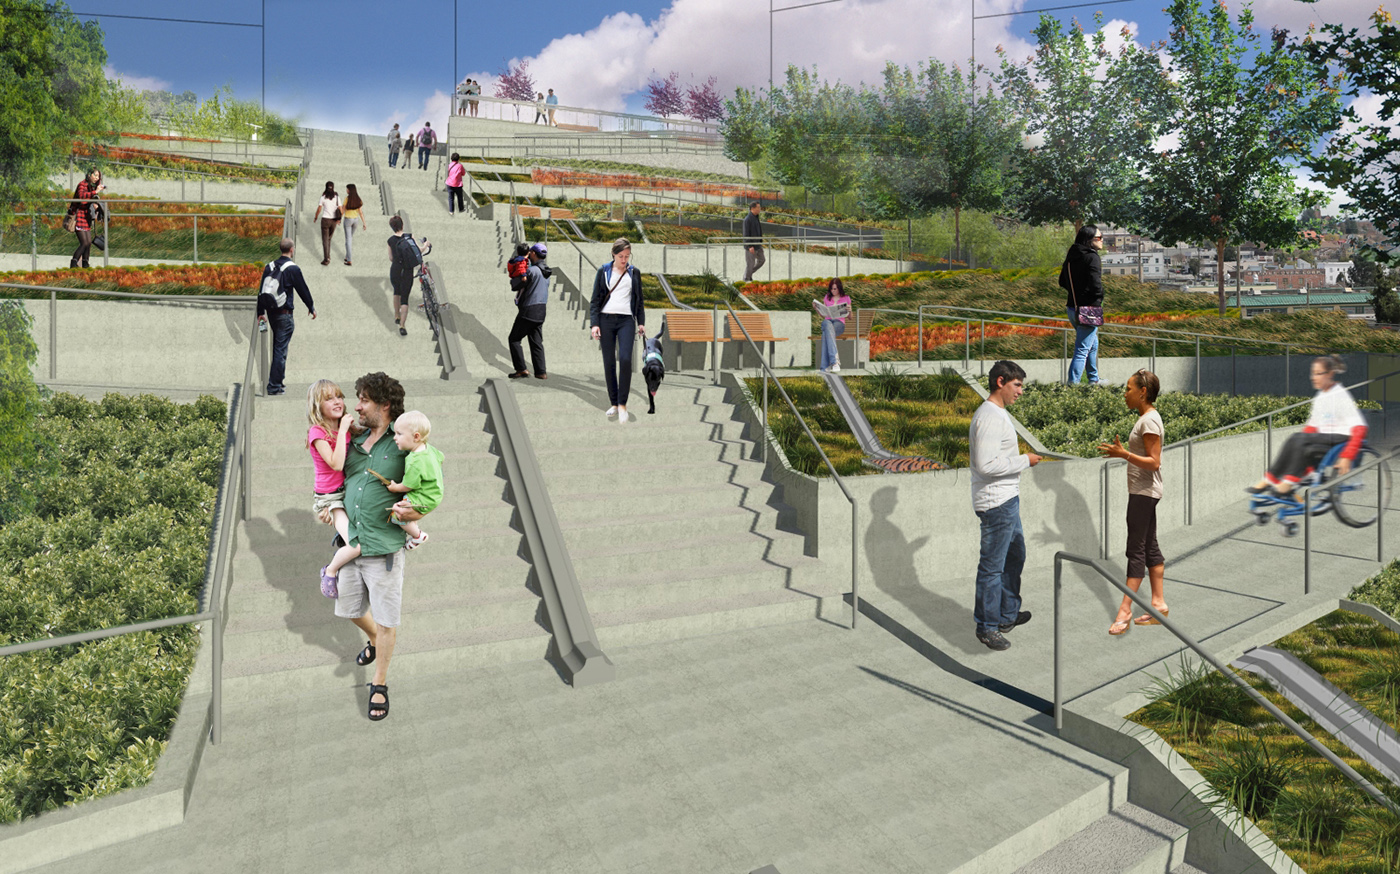 GGLO Is Doing Urban Design And Landscape Architecture